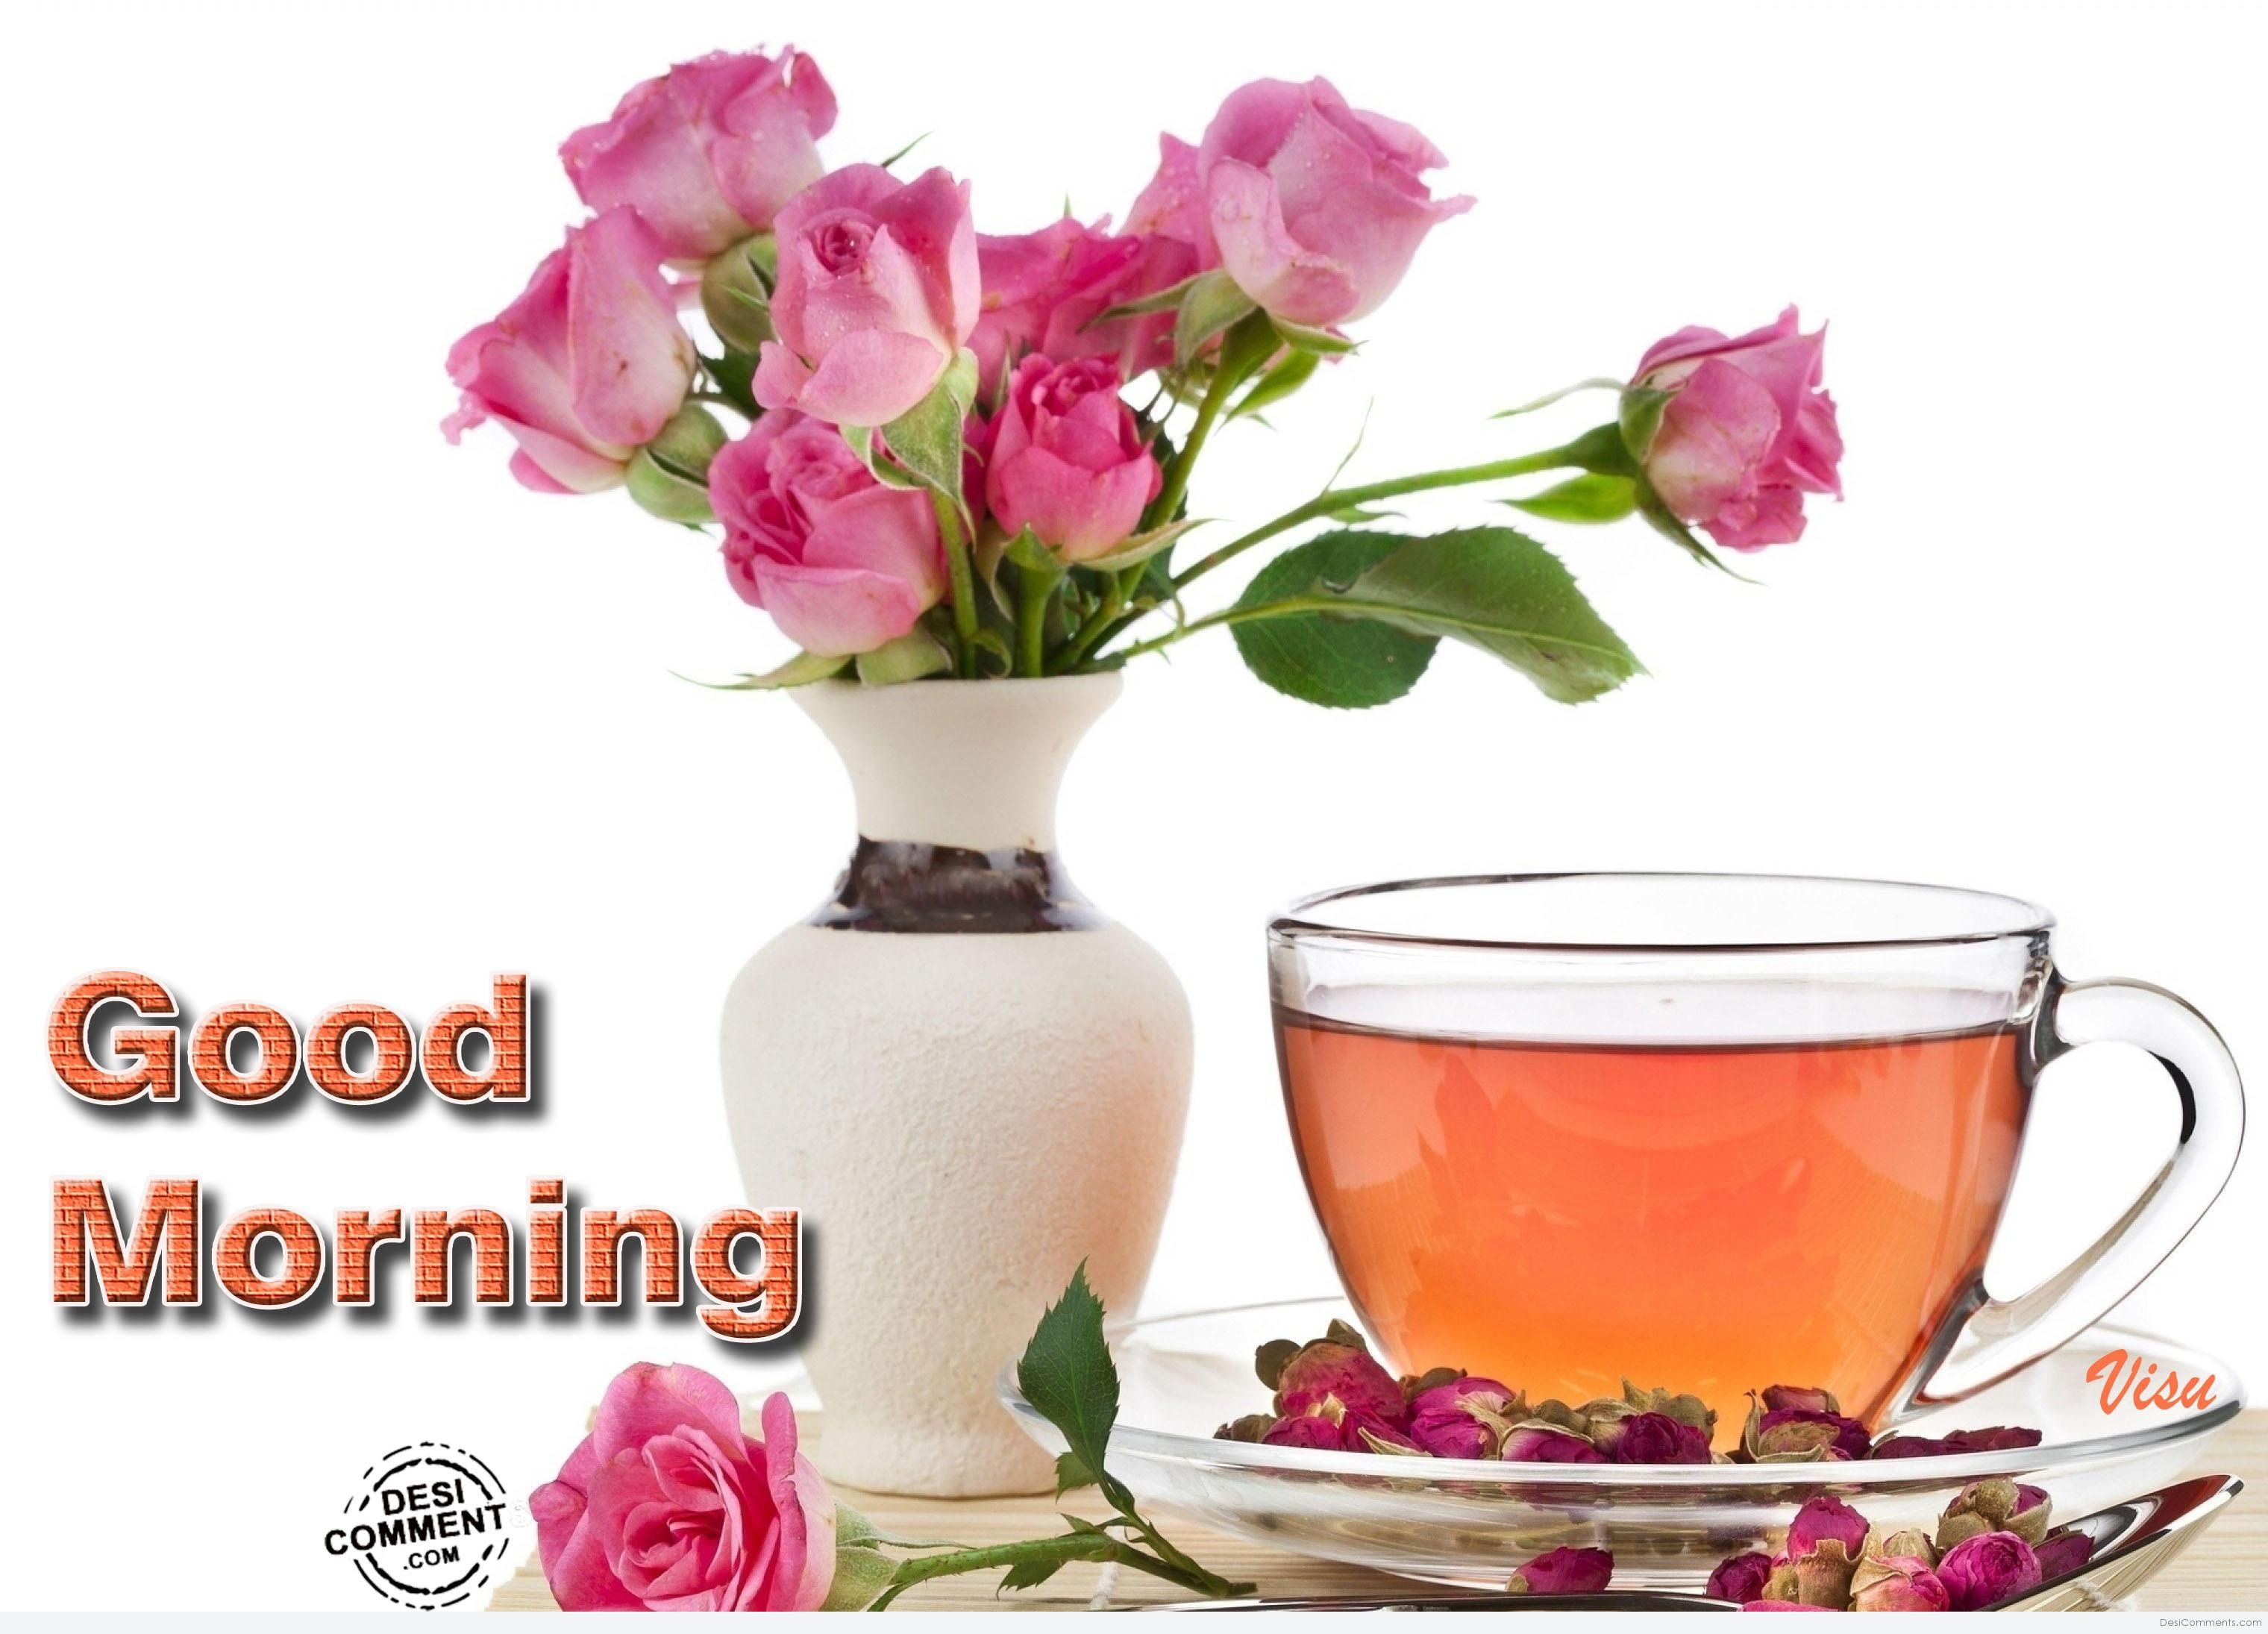 Good Morning Pictures For Whatsapp : Good morning pictures images graphics for facebook